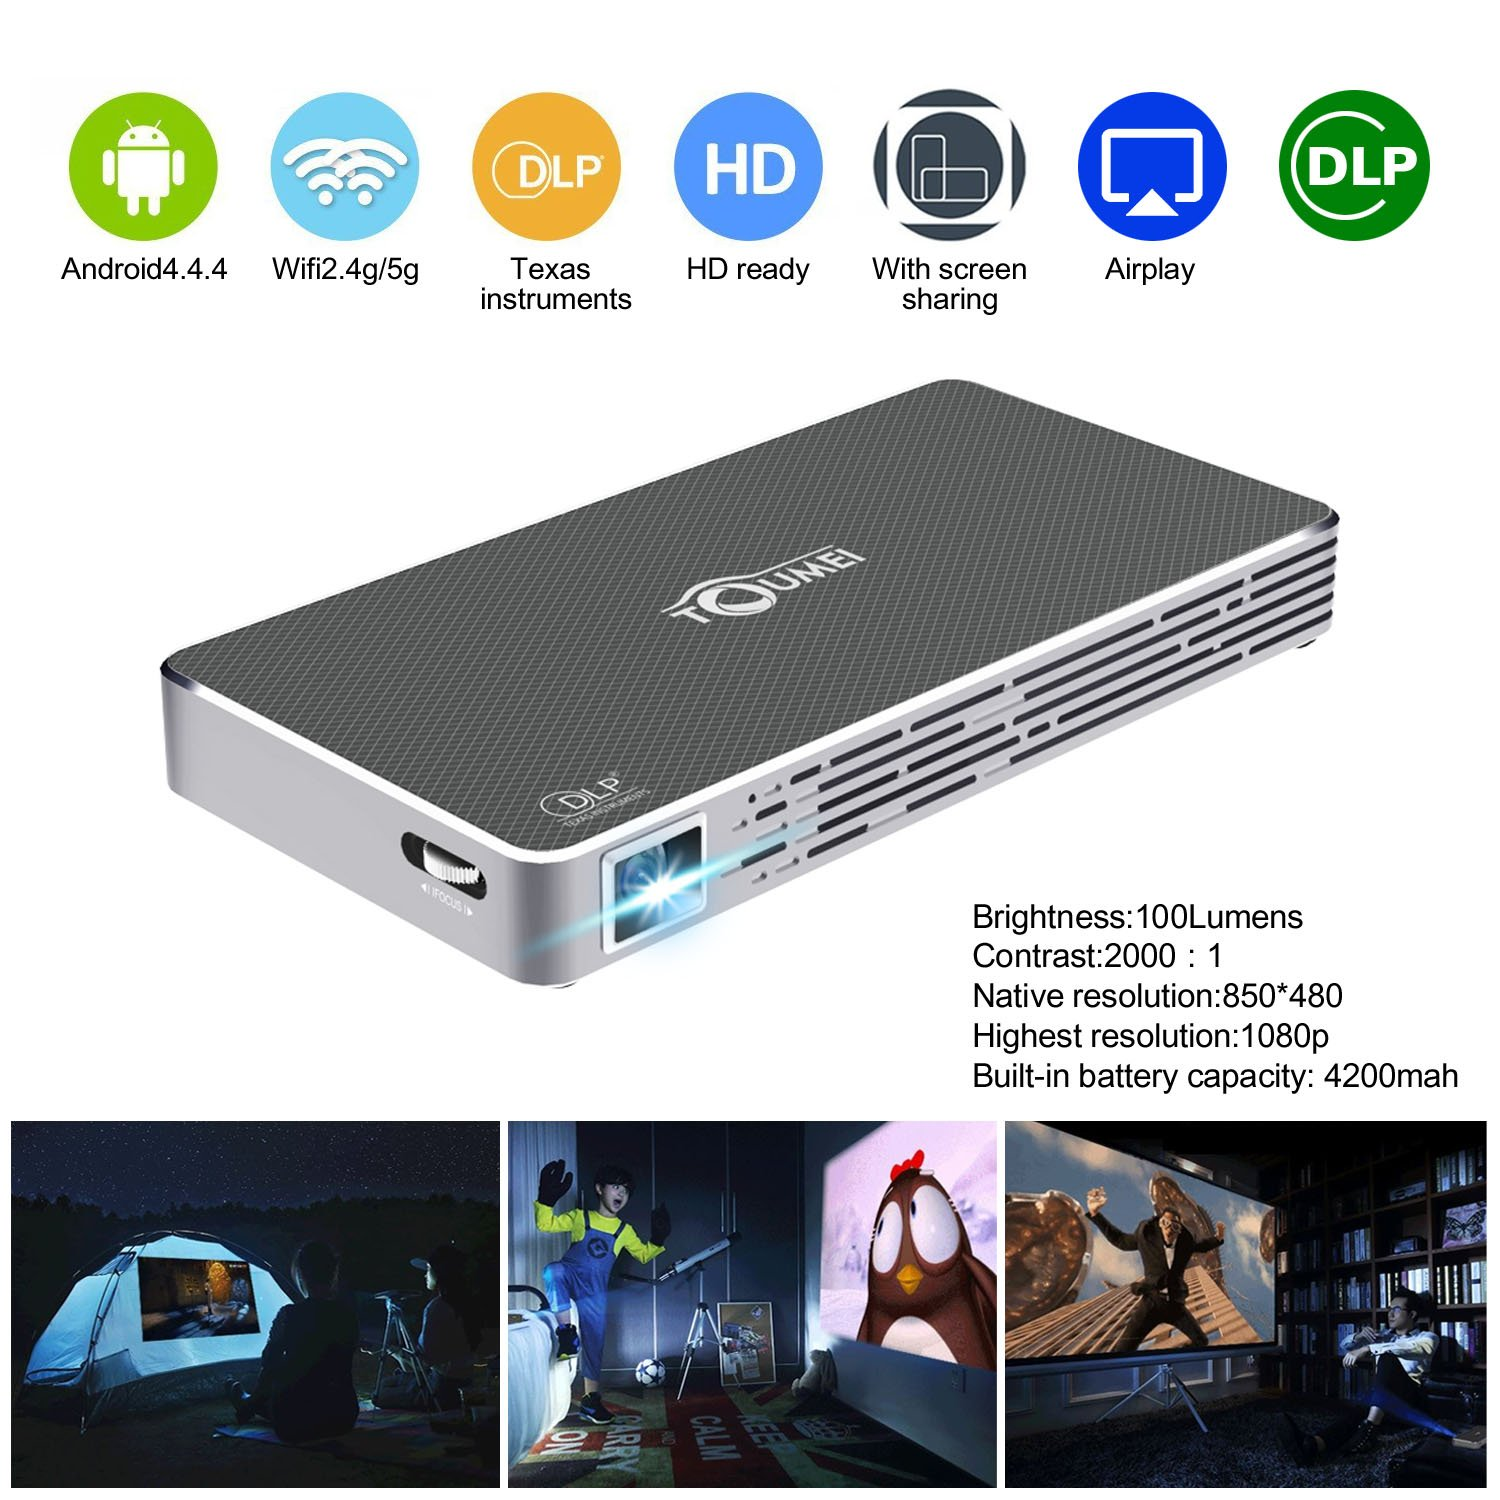 Mini Pico Projector HD DLP Projector hdmi 1080p Portable Wifi Wireless bluetooth home theater projector for smartphone iphone Andriod,TOUMEI C800S Keystone Correction